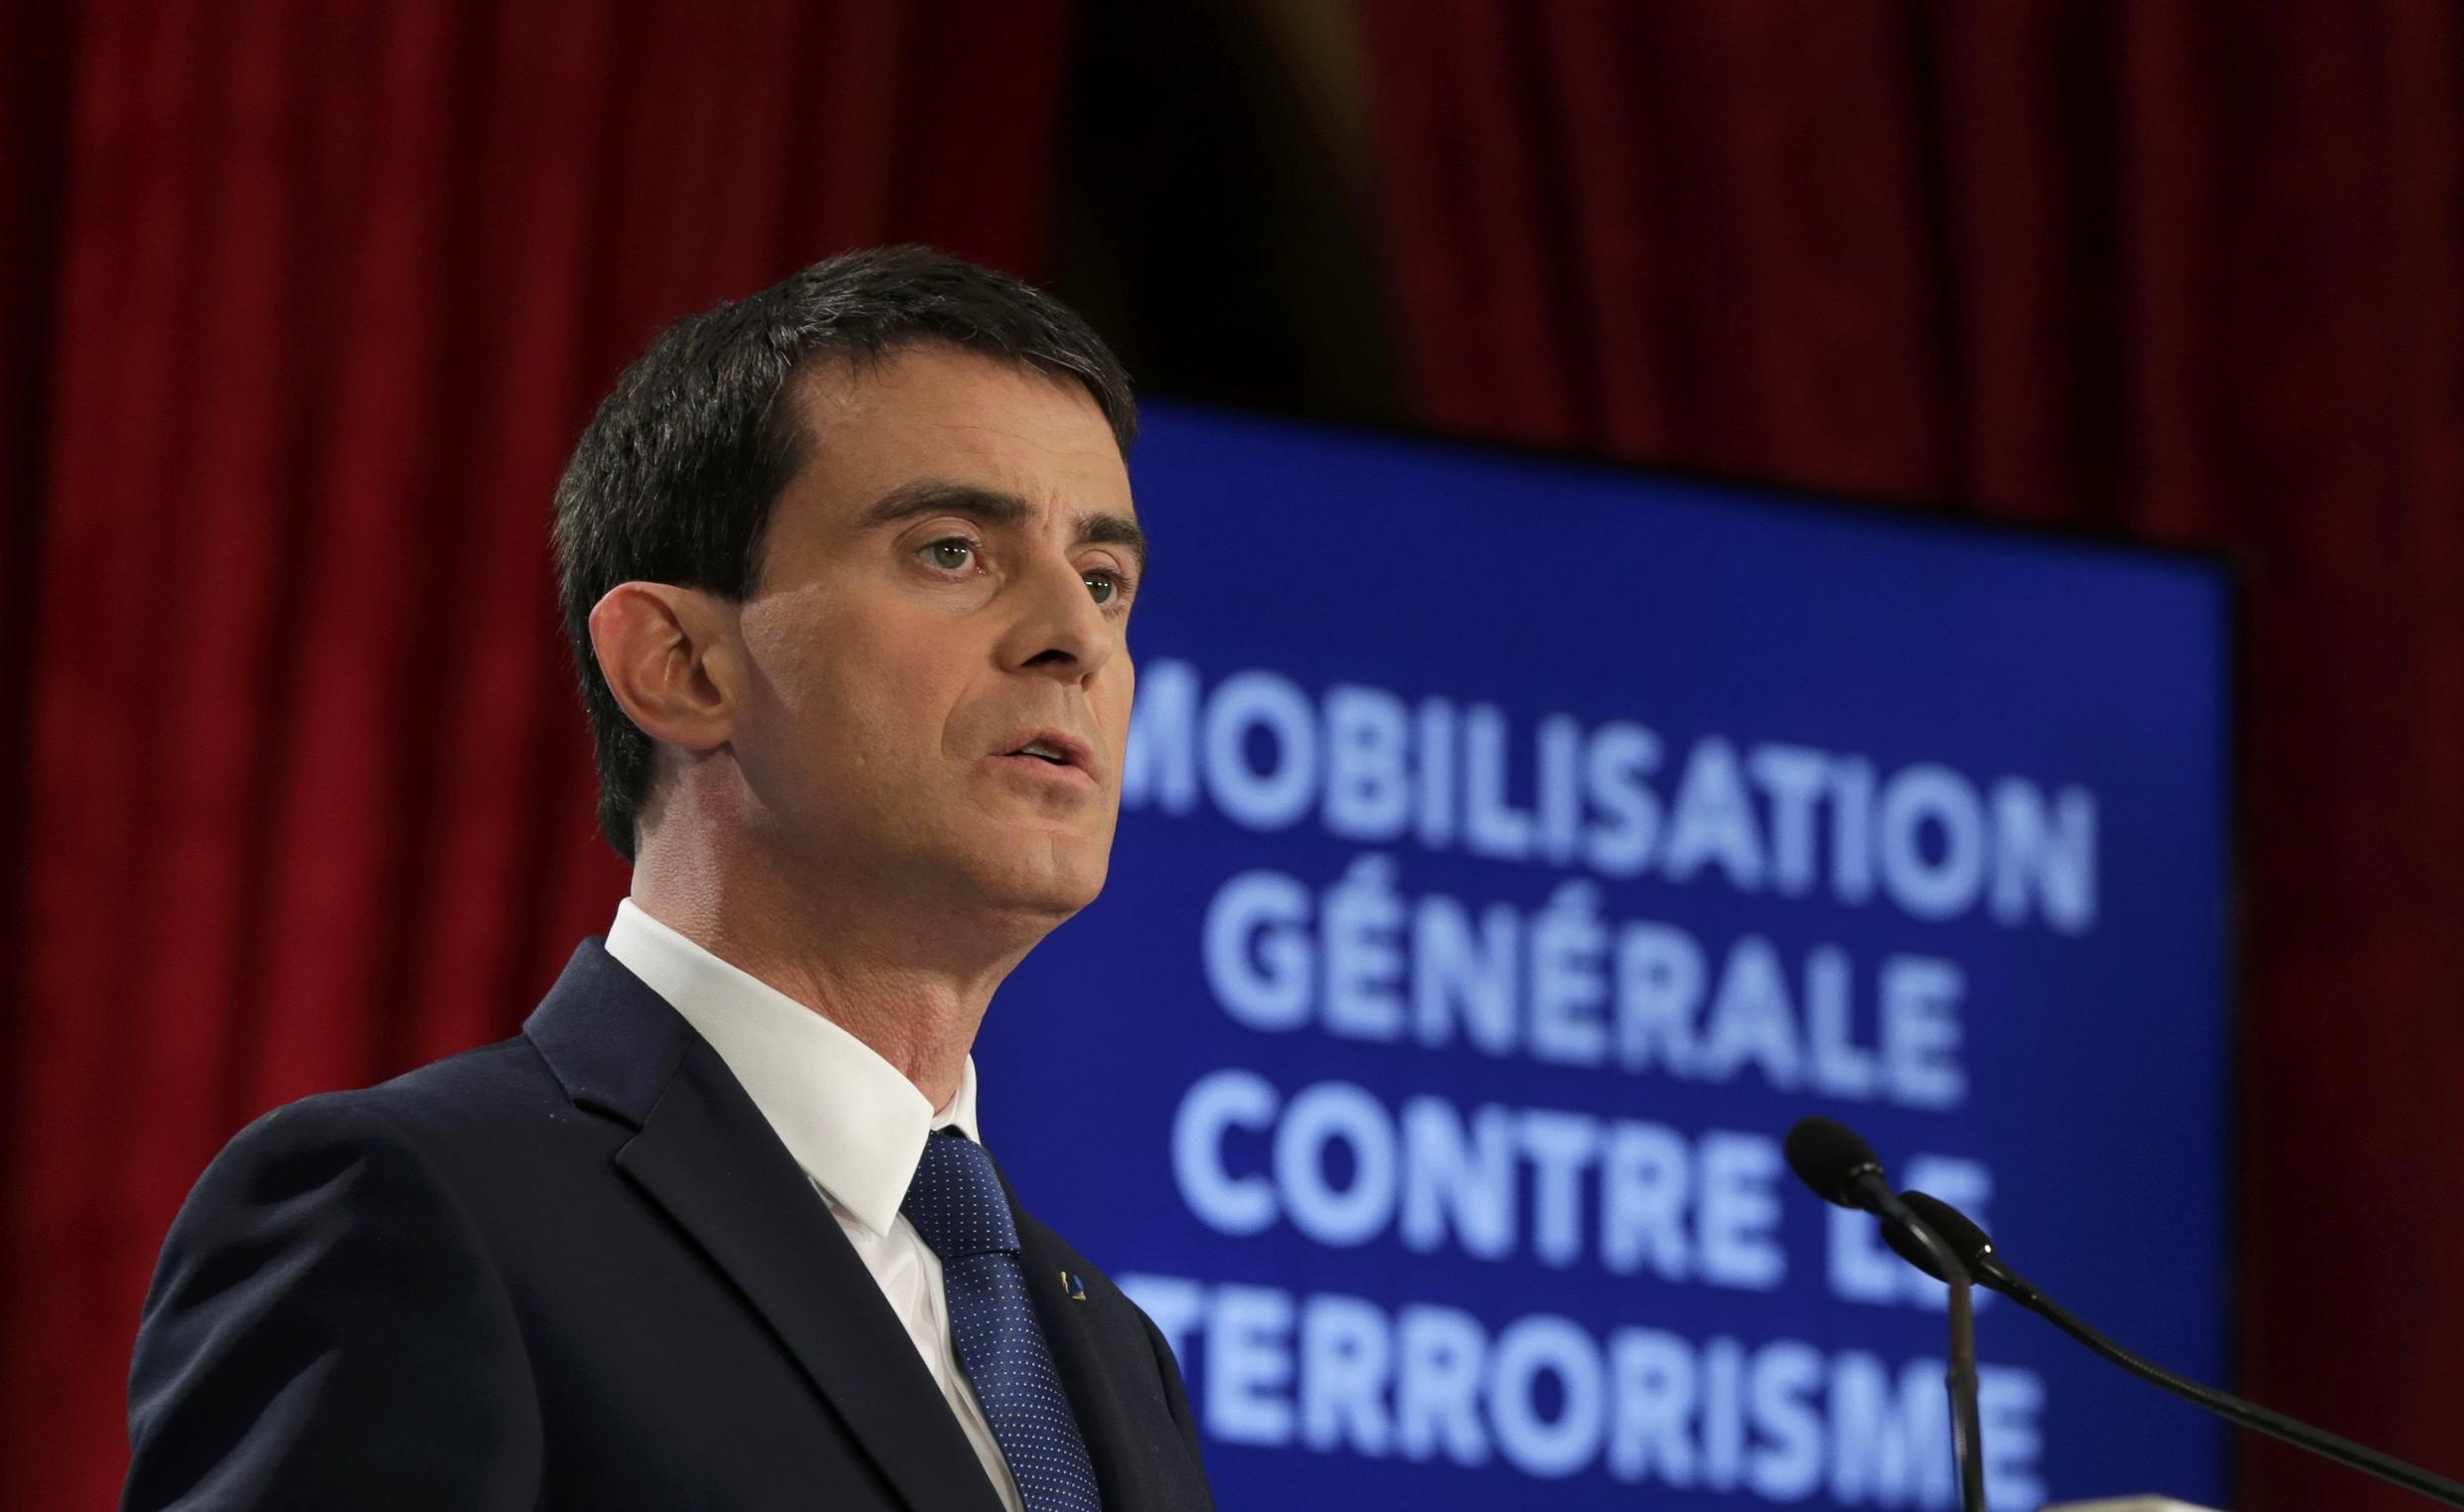 French Prime Minister Manuel Valls unveils his new security measures on Wednesday